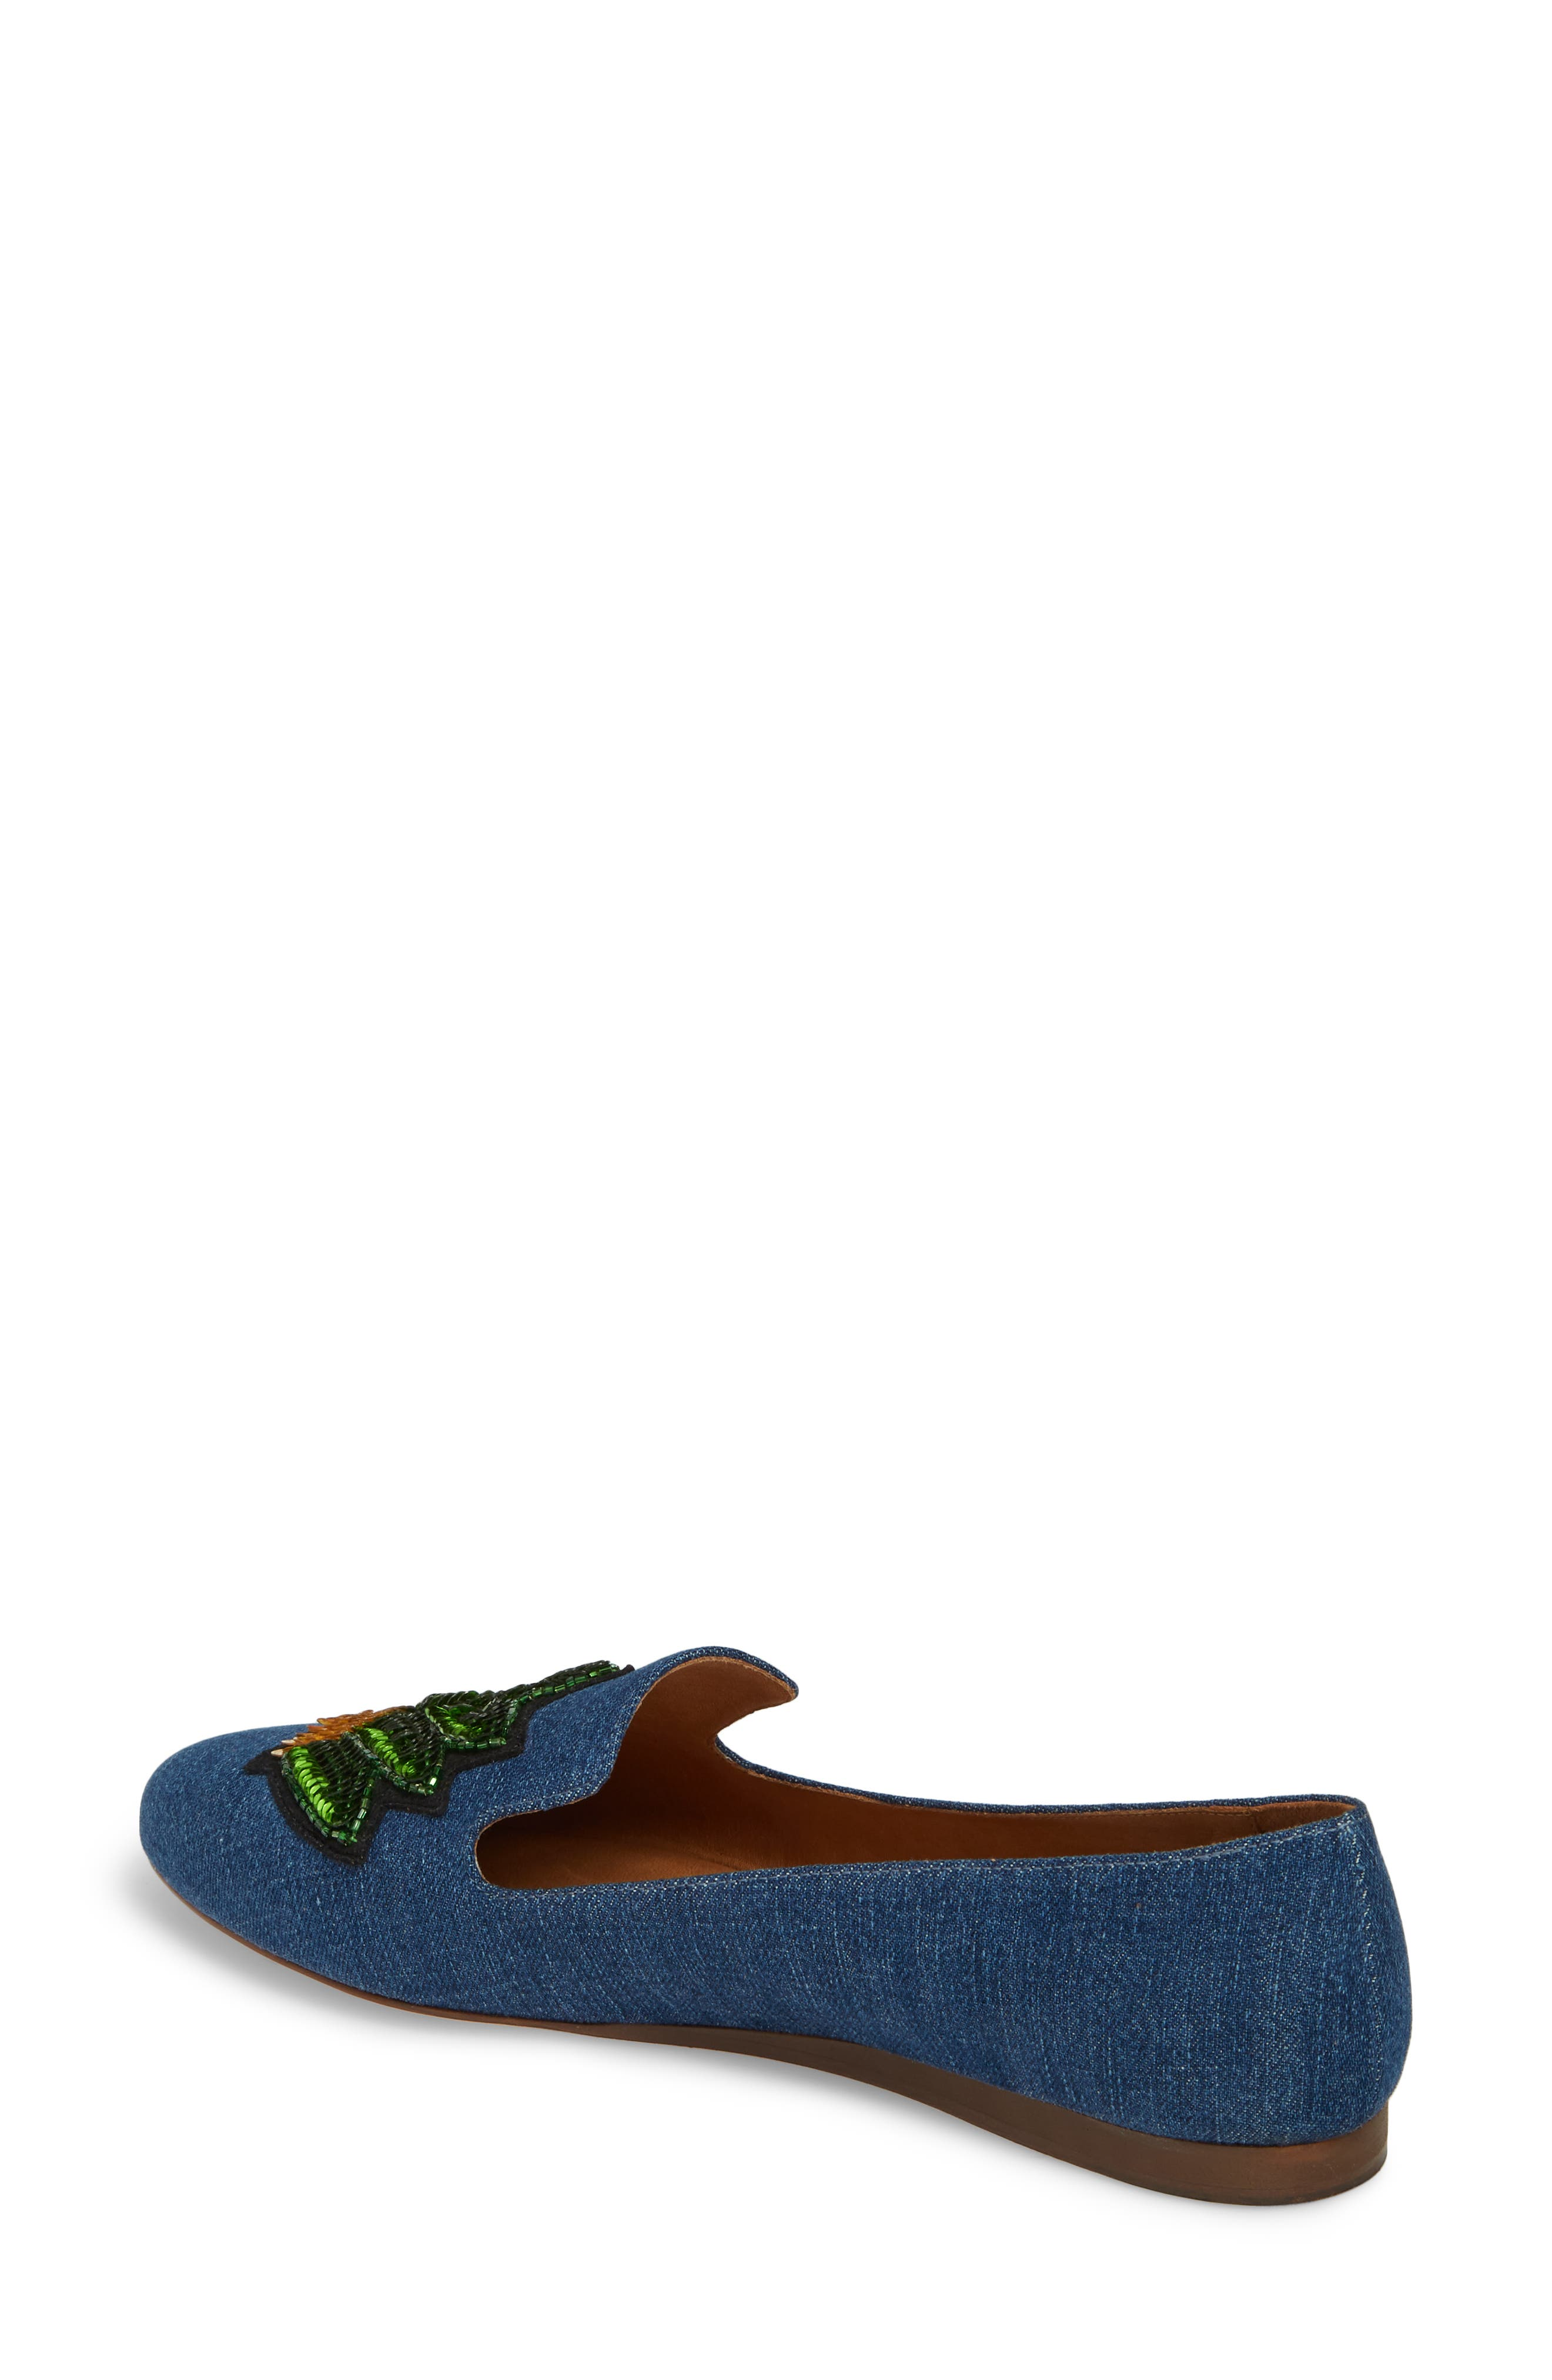 Griffin Pointy Toe Loafer,                             Alternate thumbnail 2, color,                             Chambray